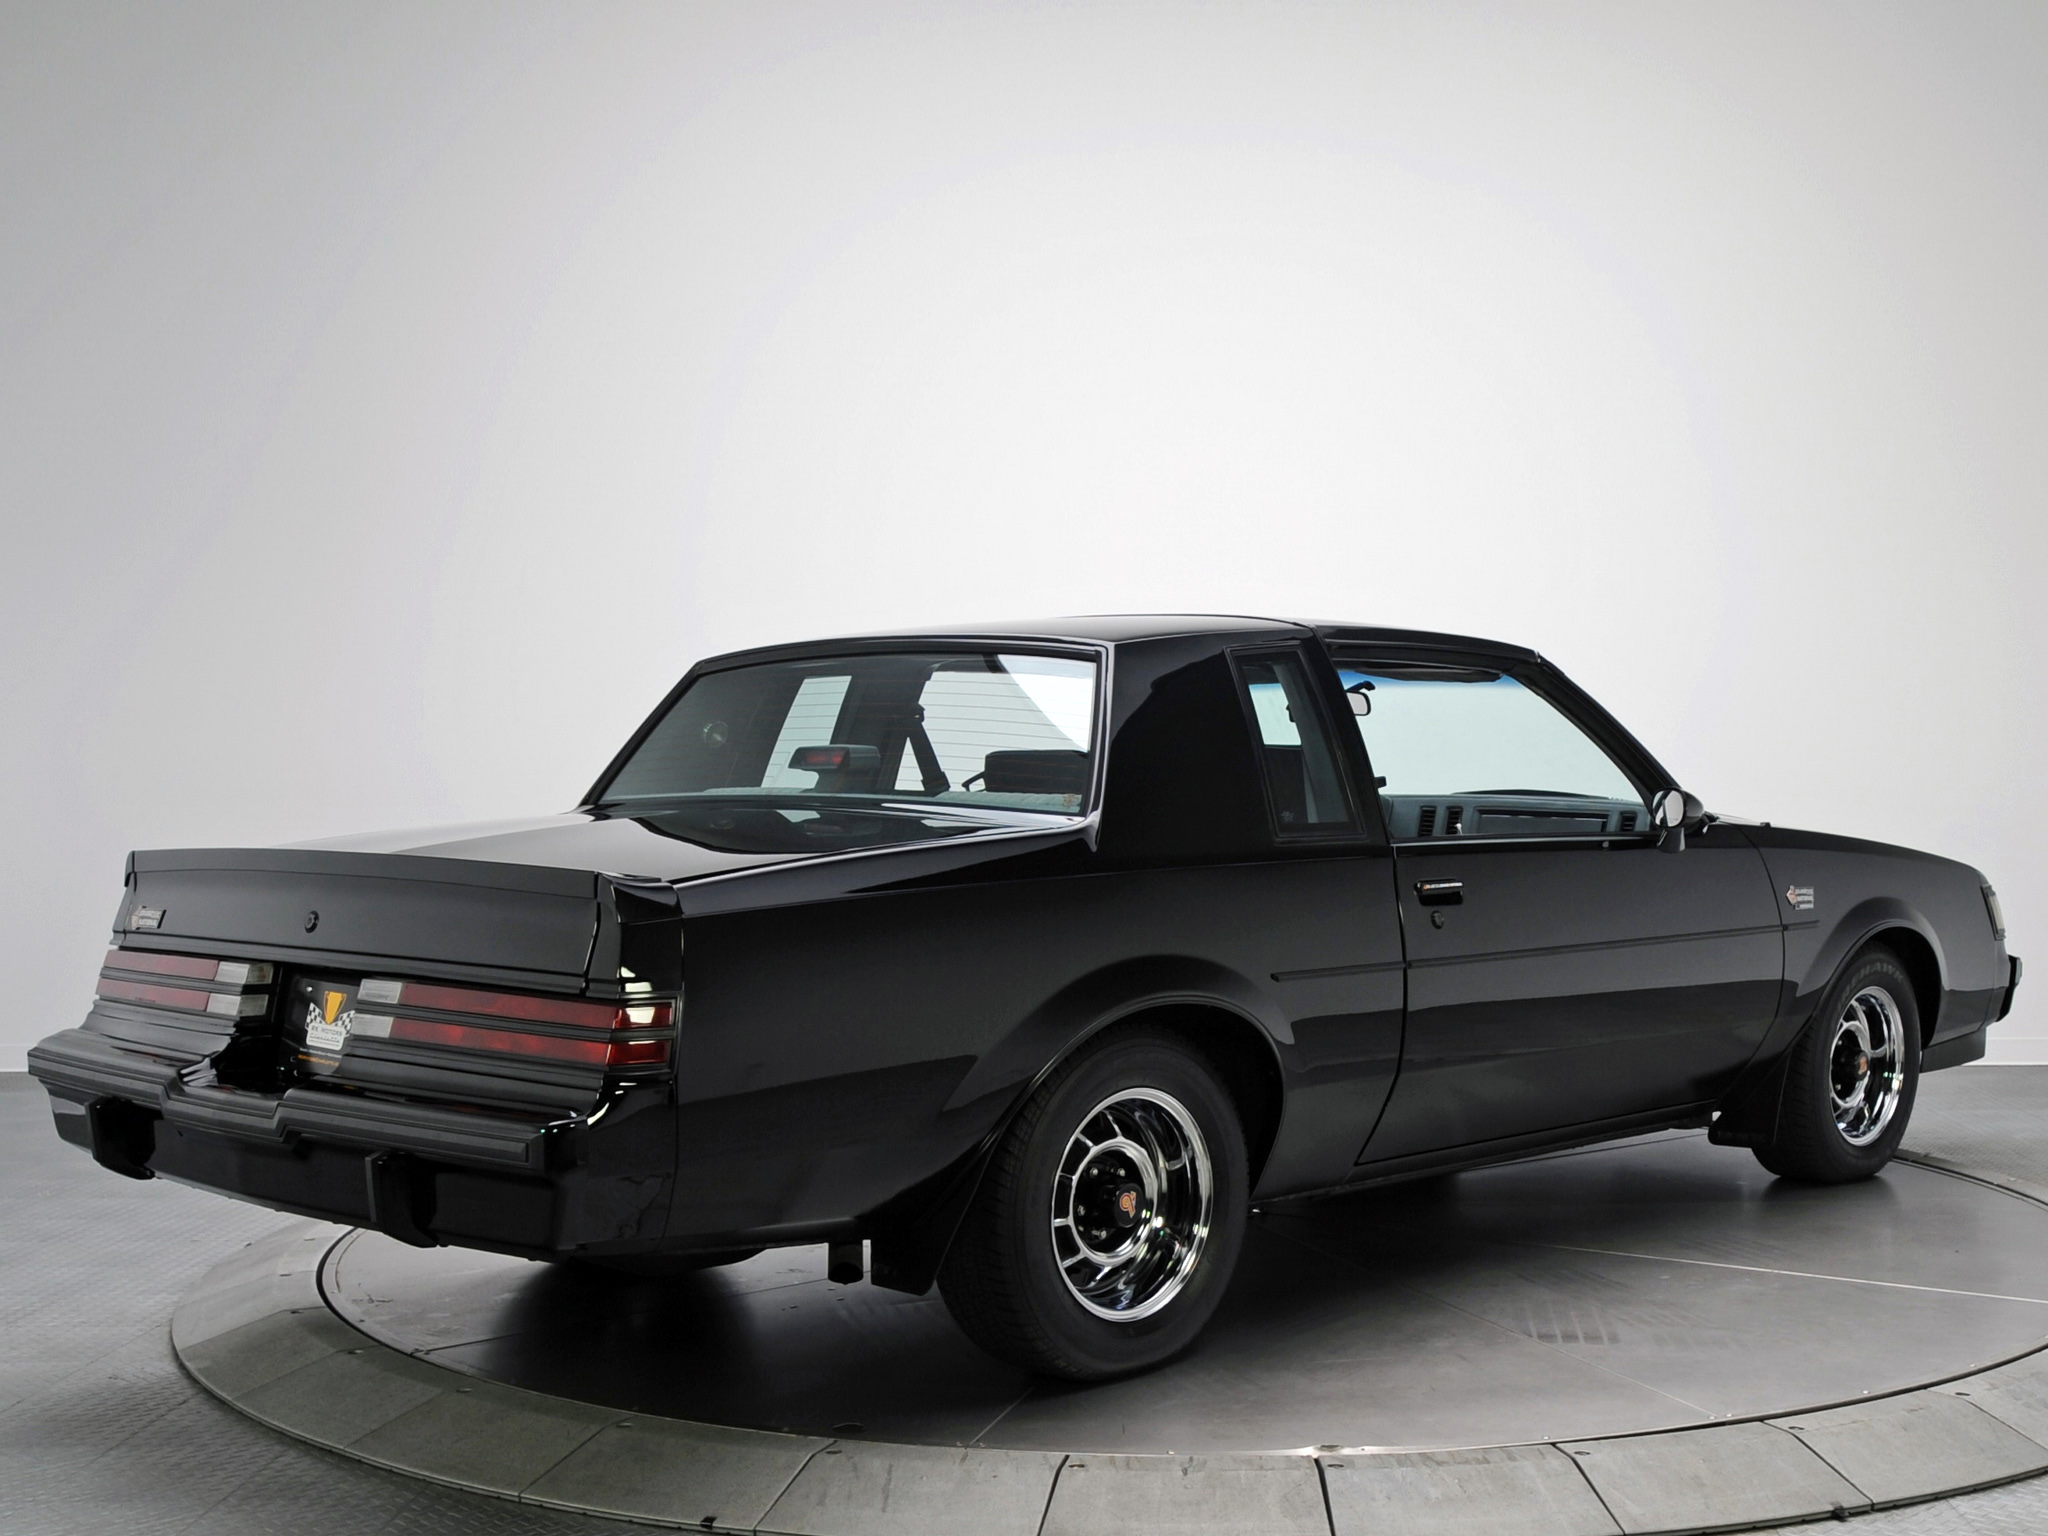 1987 buick regal grand national muscle g wallpaper 2048x1536 164687 wallpaperup. Black Bedroom Furniture Sets. Home Design Ideas